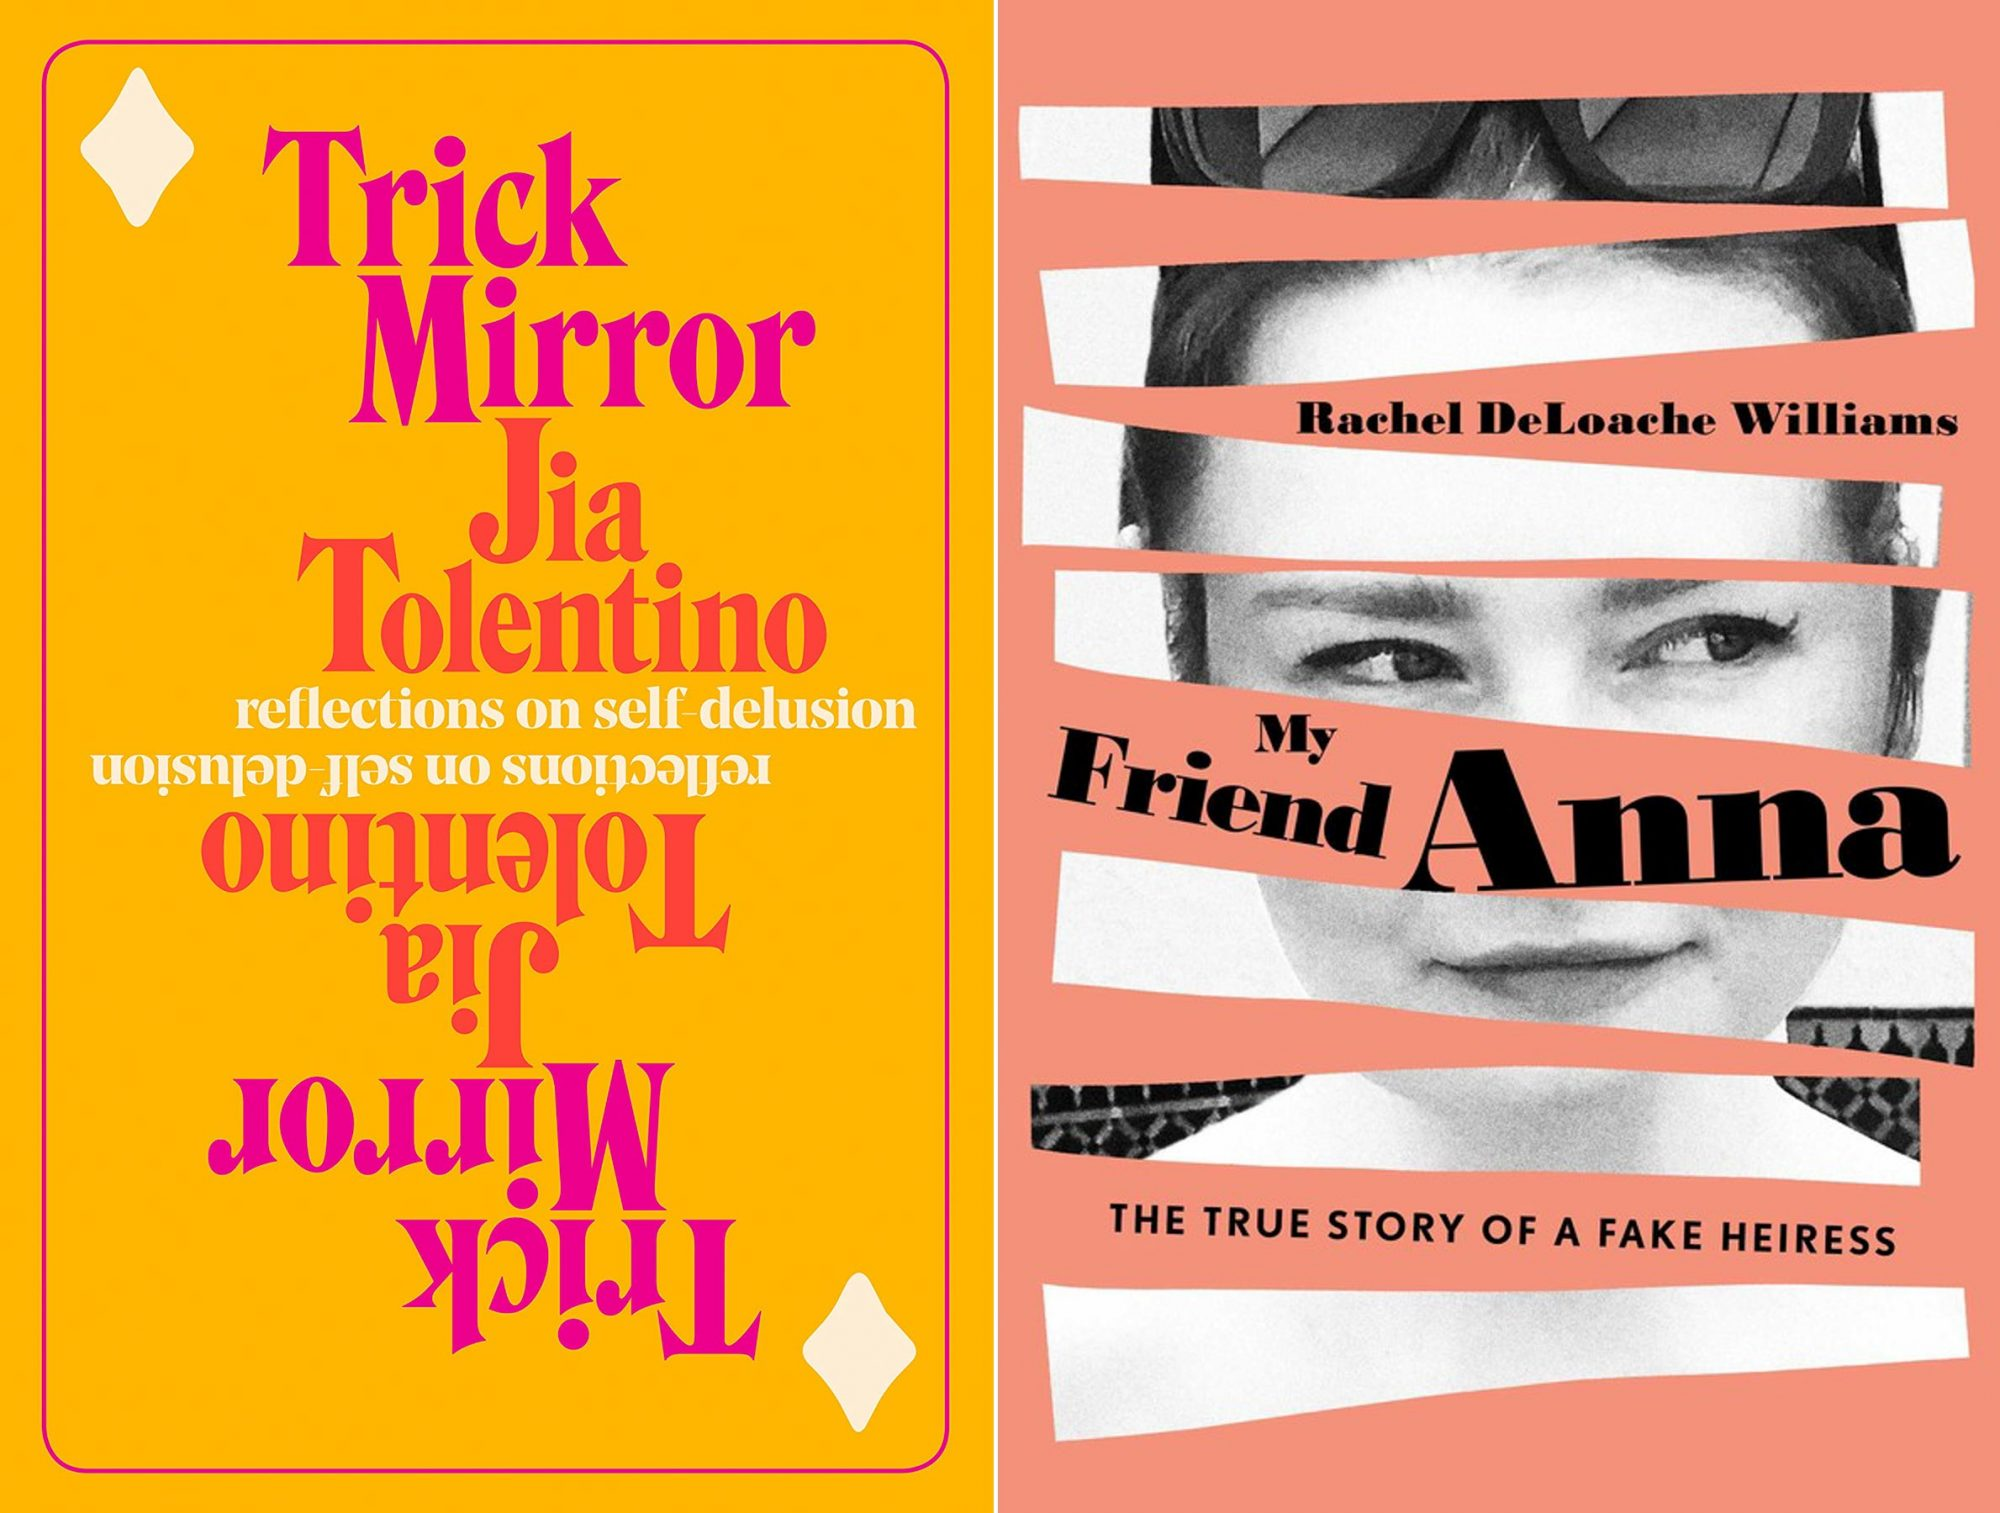 Trick Mirror: Reflections on Self-Delusion Book by Jia Tolentino CR: Random House My Friend Anna: The True Story of a Fake Heiress Book by Rachel DeLoache Williams CR: Simon & Schuster